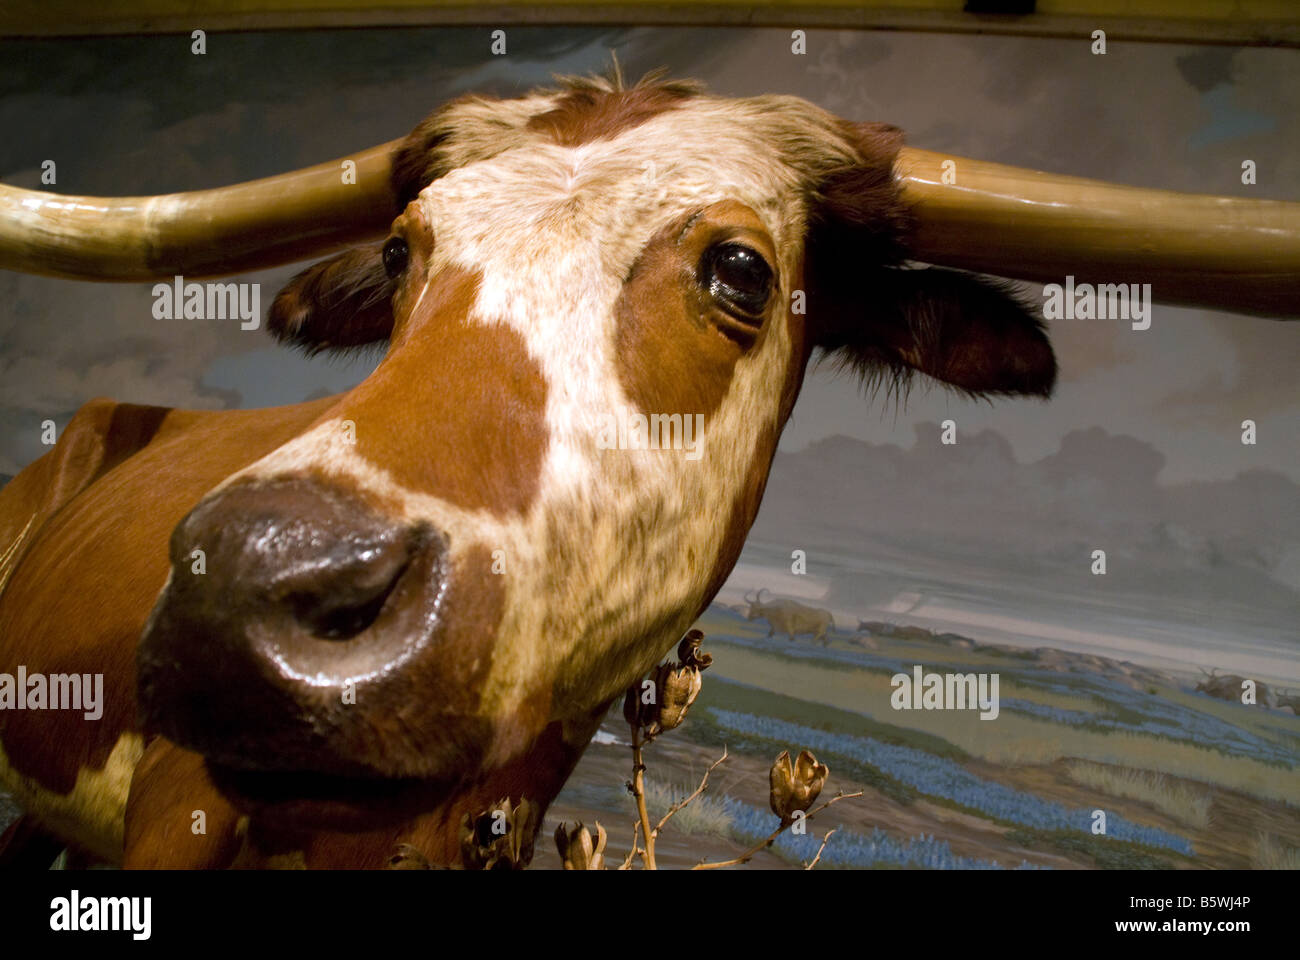 Texas longhorn steer on display at San Antonio's Buckhorn Saloon Museum - Stock Image